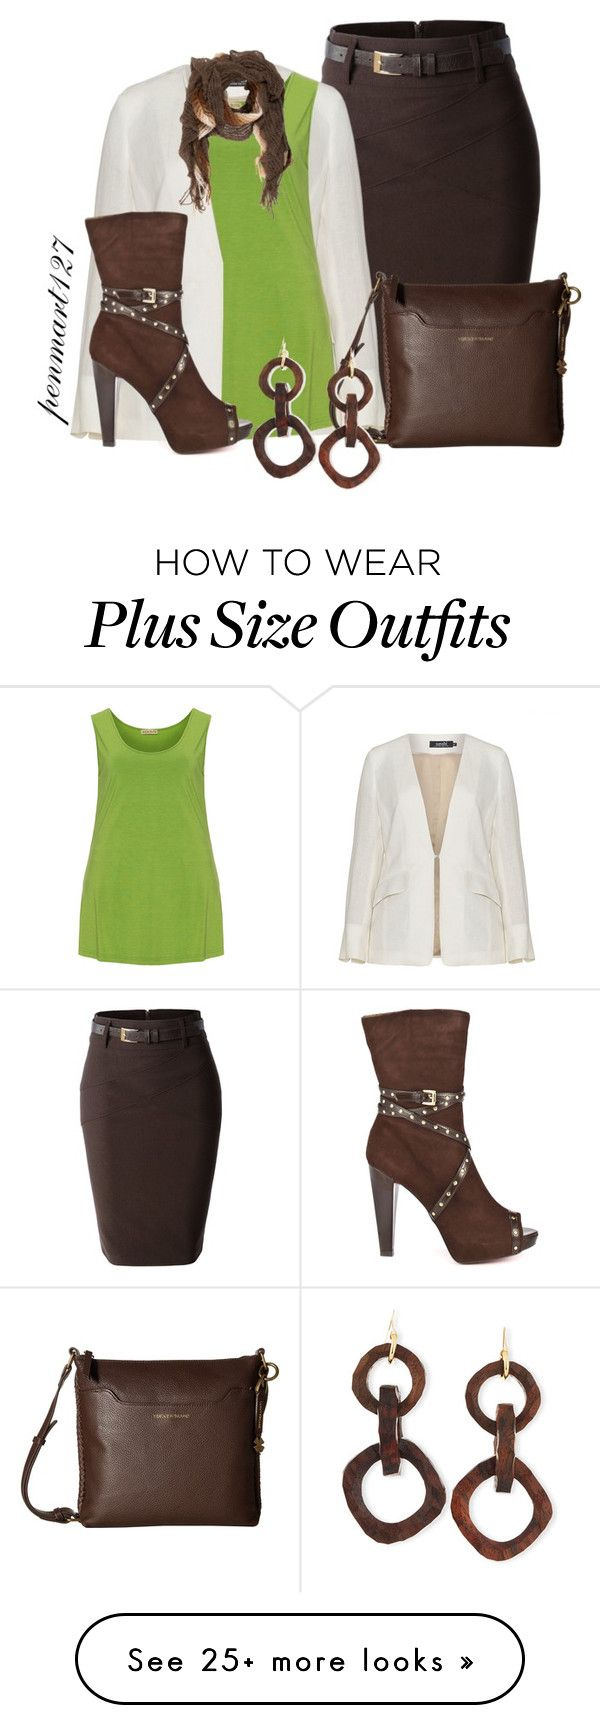 """""""Green White and Brown #Plussize"""" by penny-martin on Polyvore featuring LE3NO, navabi, Isolde Roth, Lucky Brand, Paris Hilton, Missoni and NEST Jewelry"""